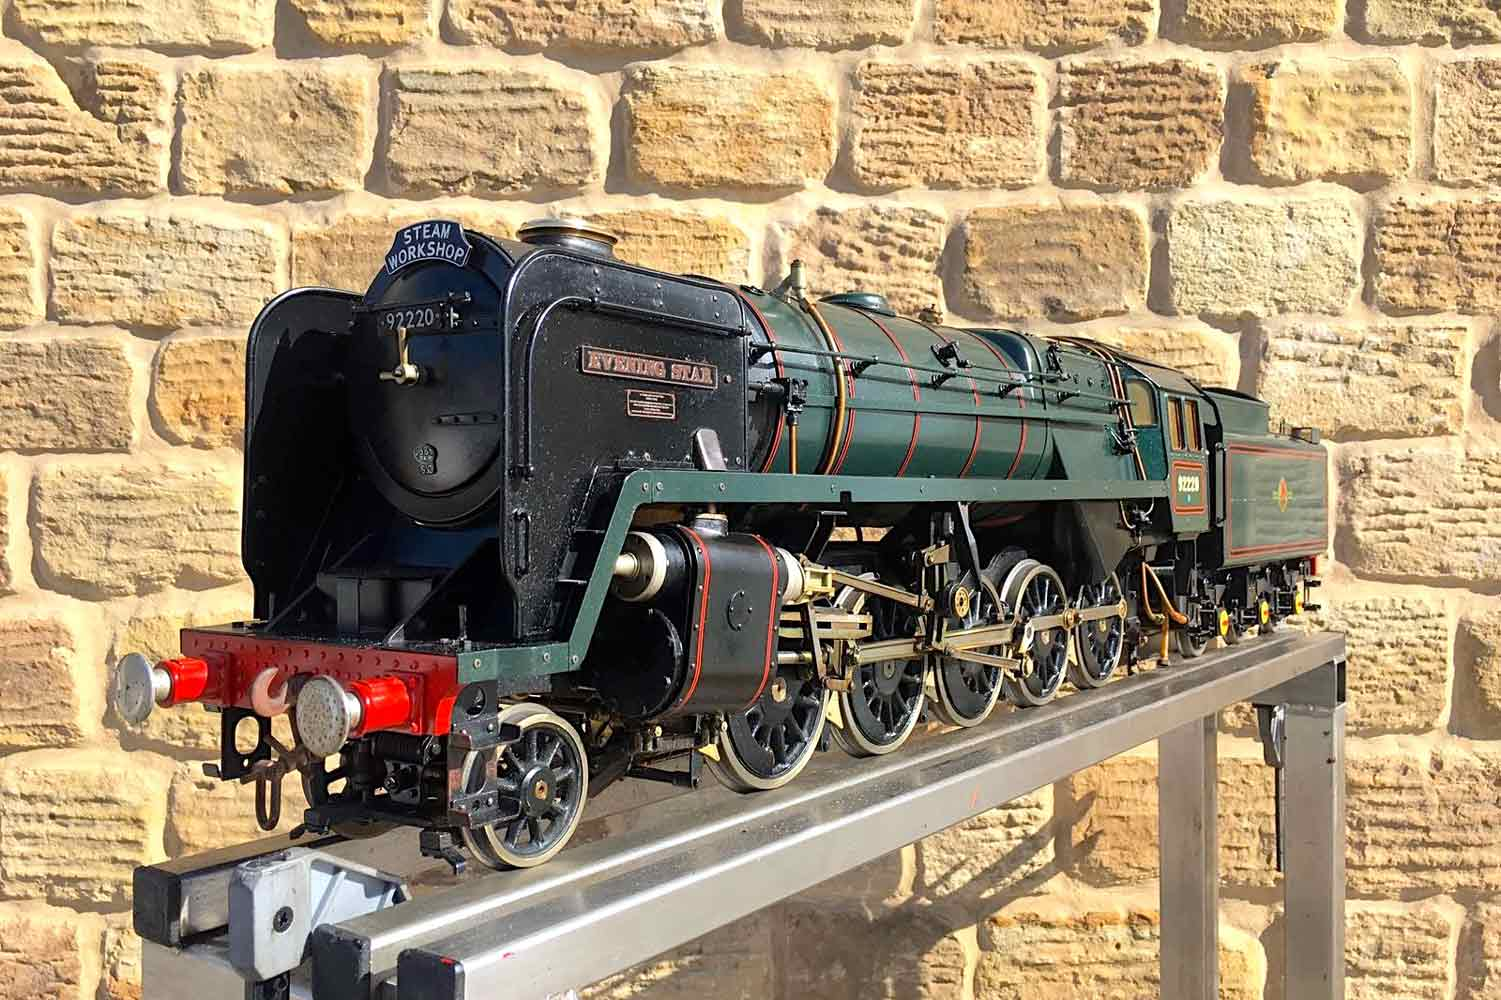 test 3-and-a-half-inch-BR-9F-OS-live-steam-locomotive-for-sale-09